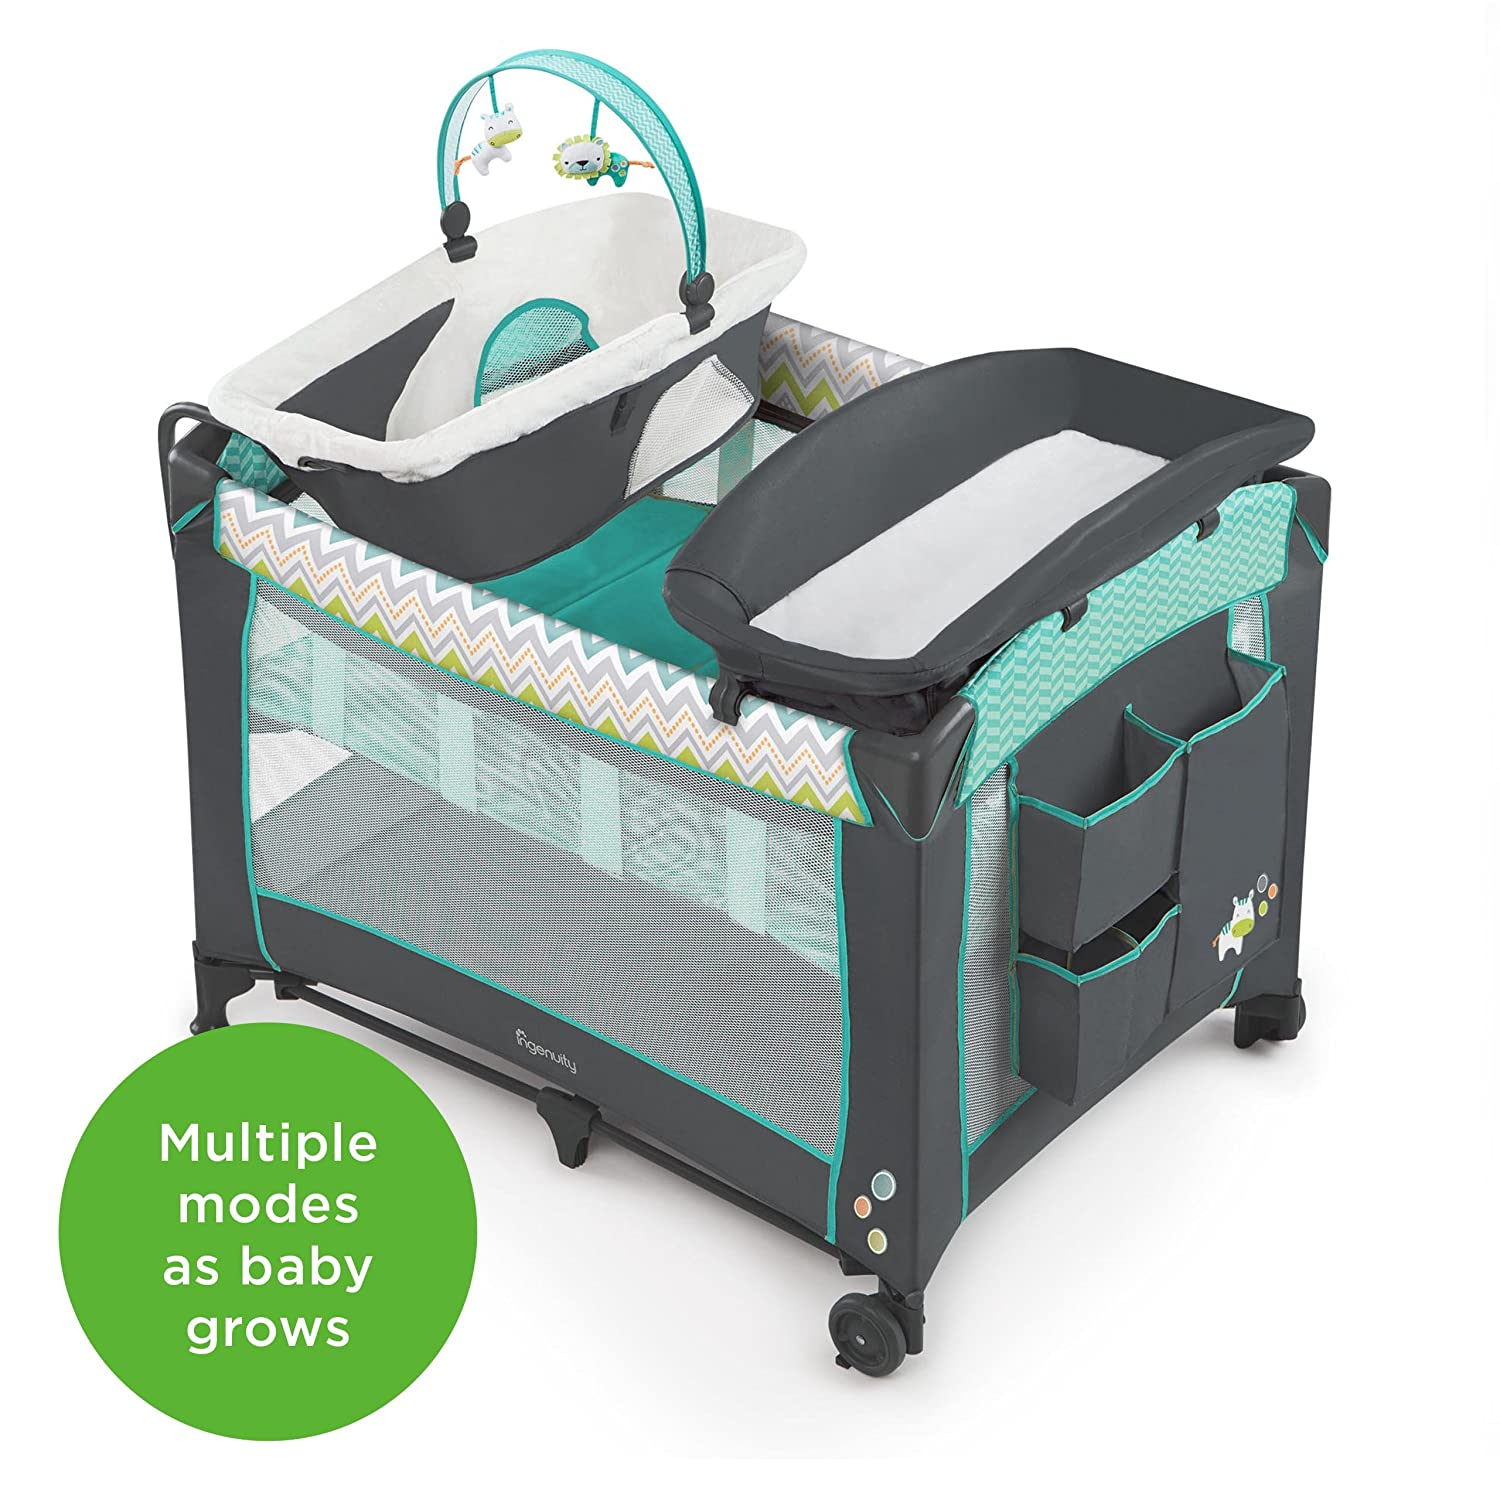 Ingenuity Smart and Simple Playard – Ridgedale